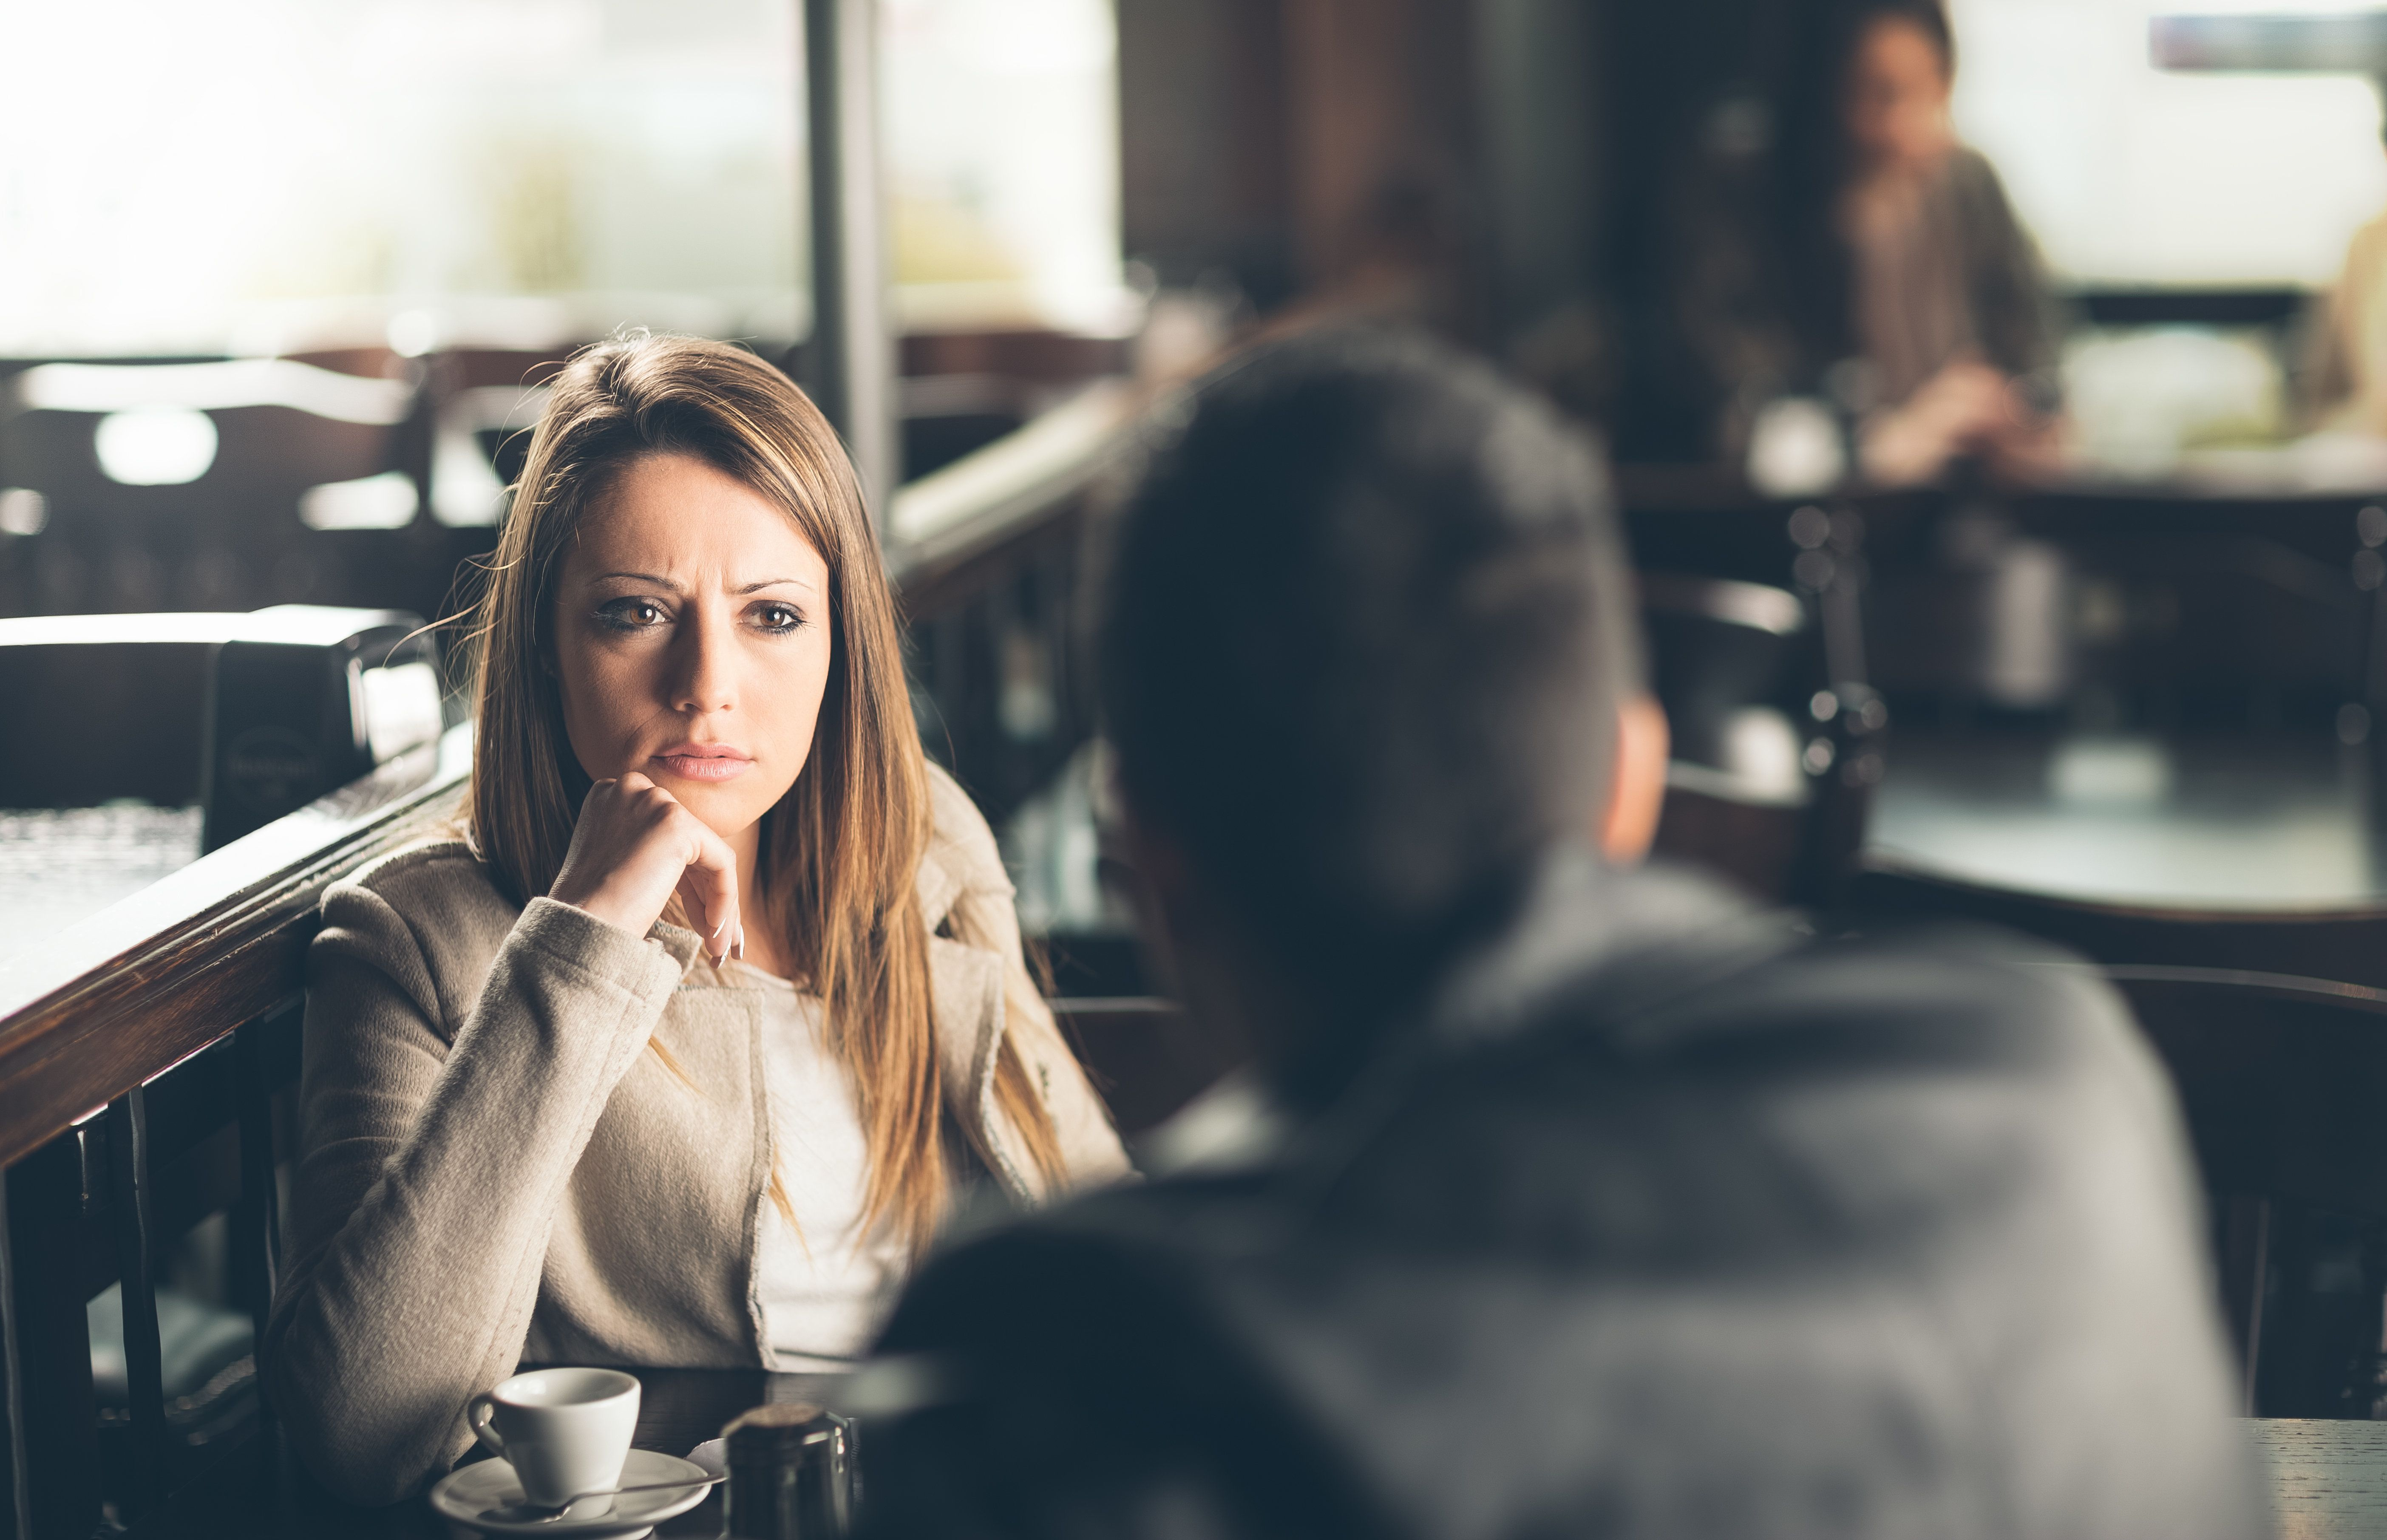 Revealed: The Worst Things Men Have Said When Trying To 'Flirt' With